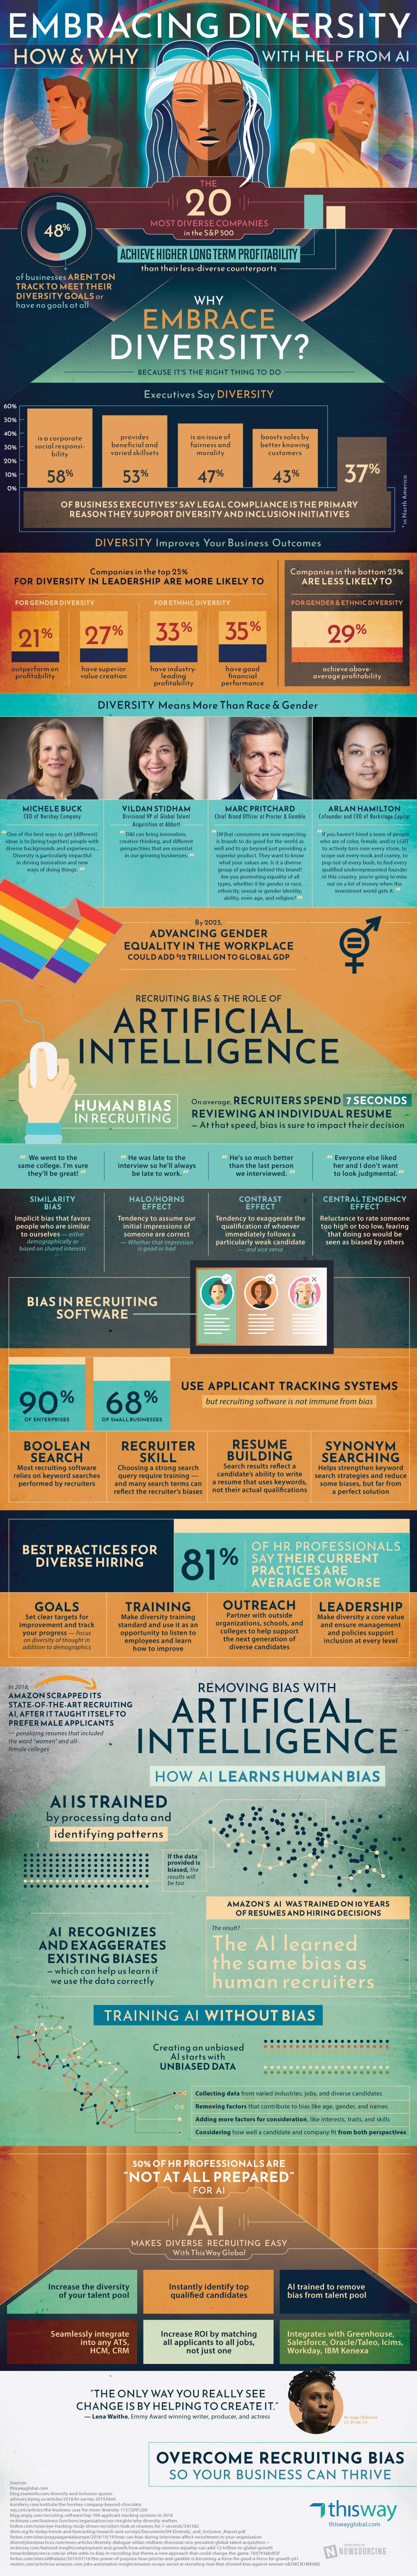 Fixing Recruiting Bias With Artificial Intelligence